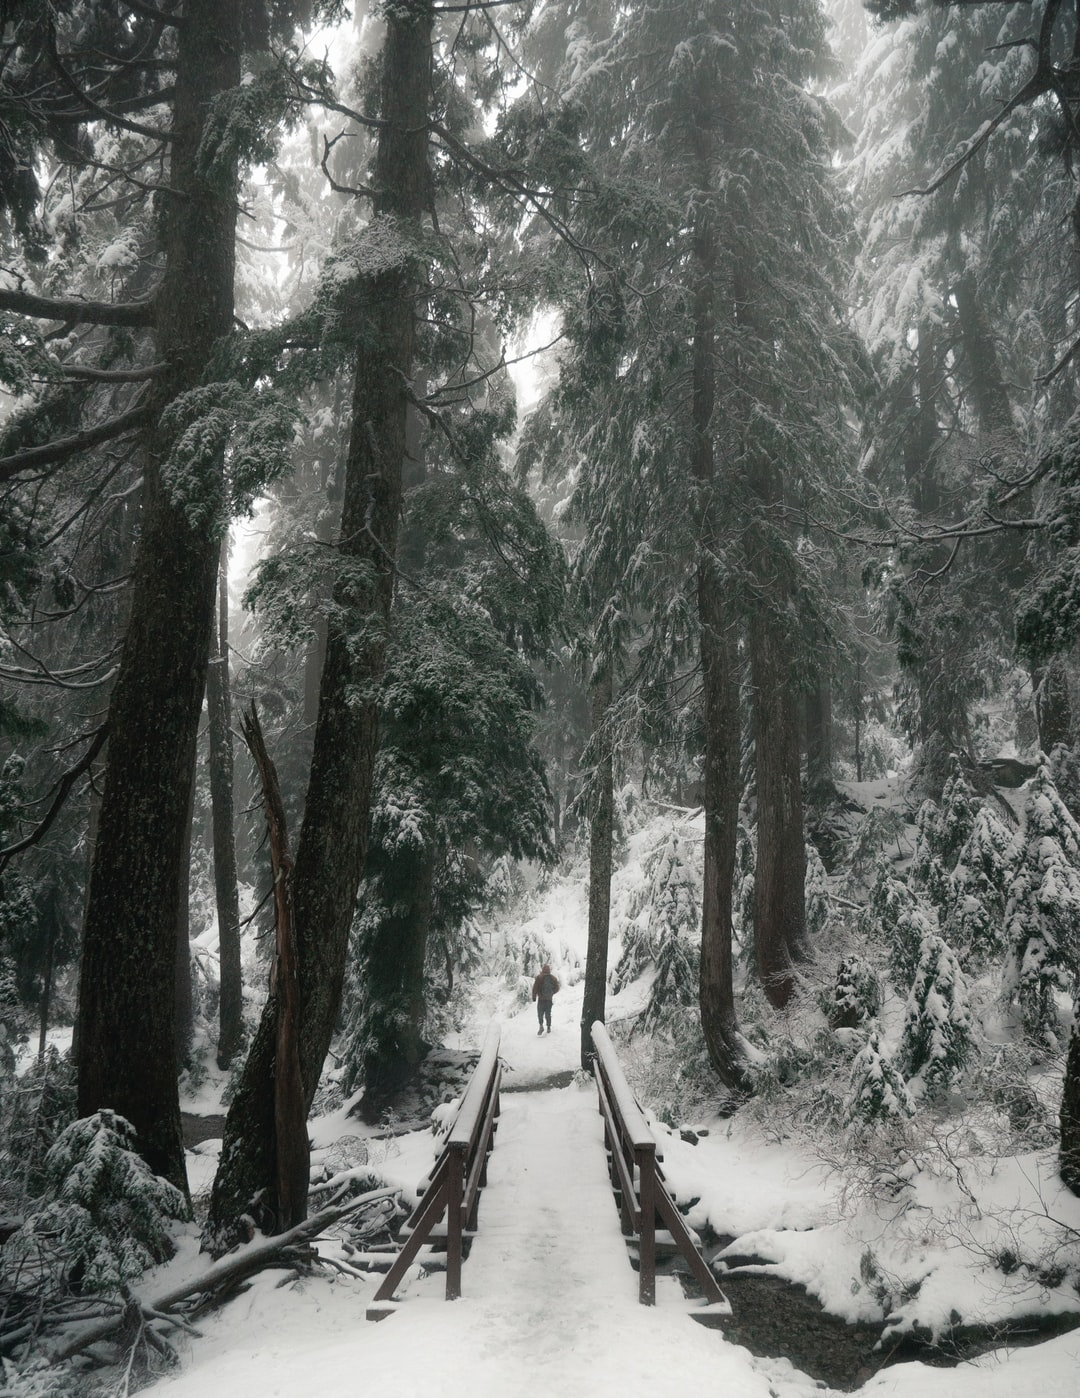 If you ever go to Mount Seymour, you might be able to do this easy trail going to Dog Mountain. But on your way back, if you feel like you still have lots of energy to spend, then I recommend you take the rough path on the way to Suicide Bluff. You won't be disappointed, but be careful not to miss the path. The ropes to help you go up there are hidden under the snow… One hell of a hike.